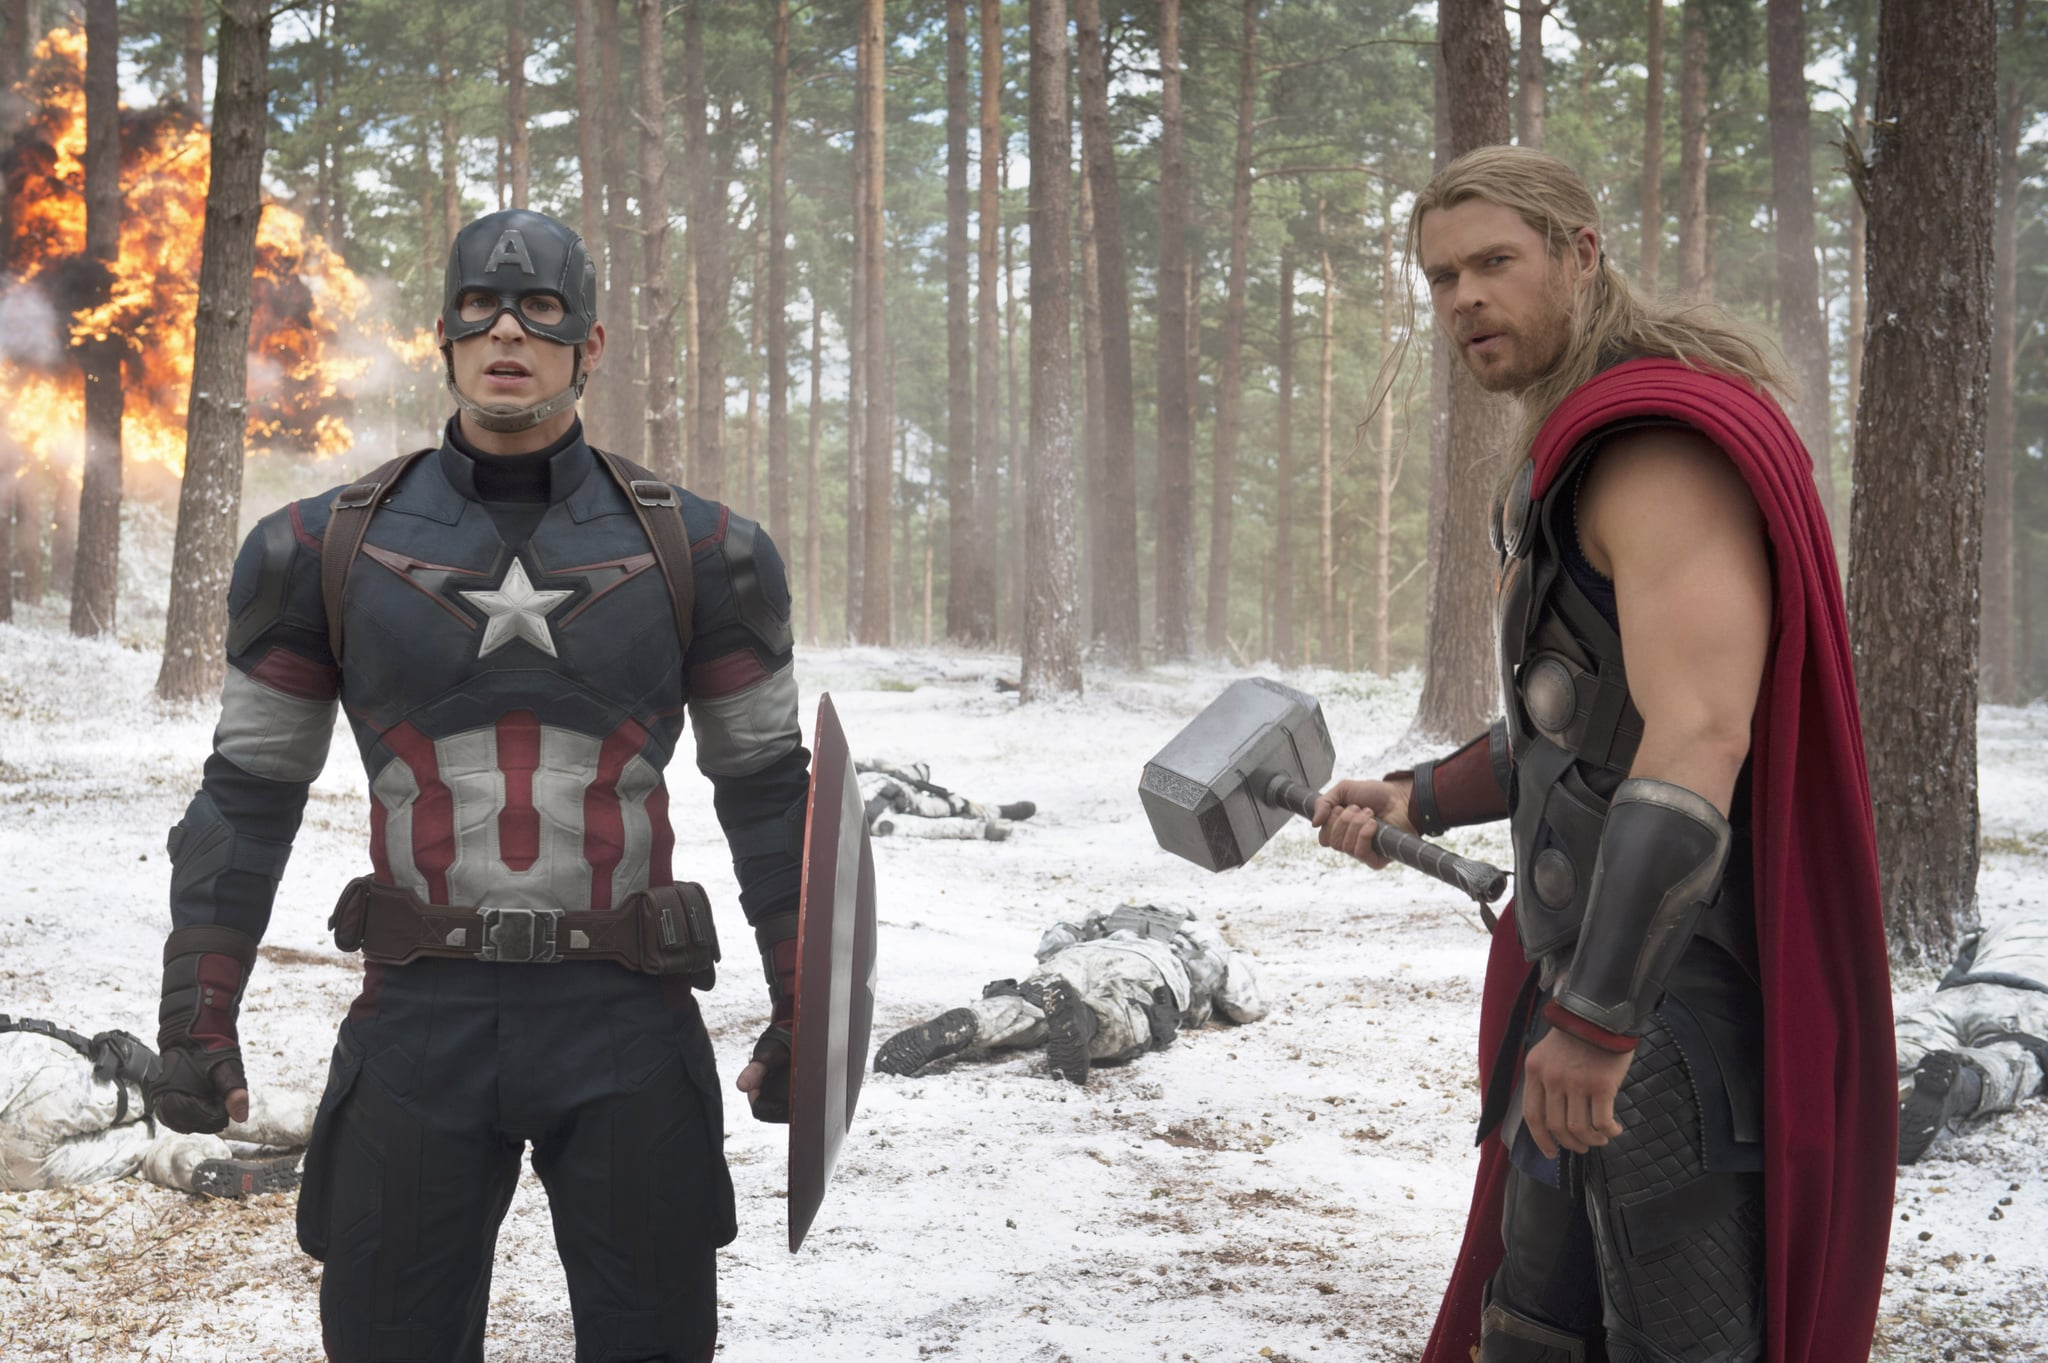 AVENGERS: AGE OF ULTRON, from left: Chris Evans as Captain America, Chris Hemsworth as Thor, 2015. ph: Jay Maidment /  Walt Disney Studios Motion Pictures / courtesy Everett Collection